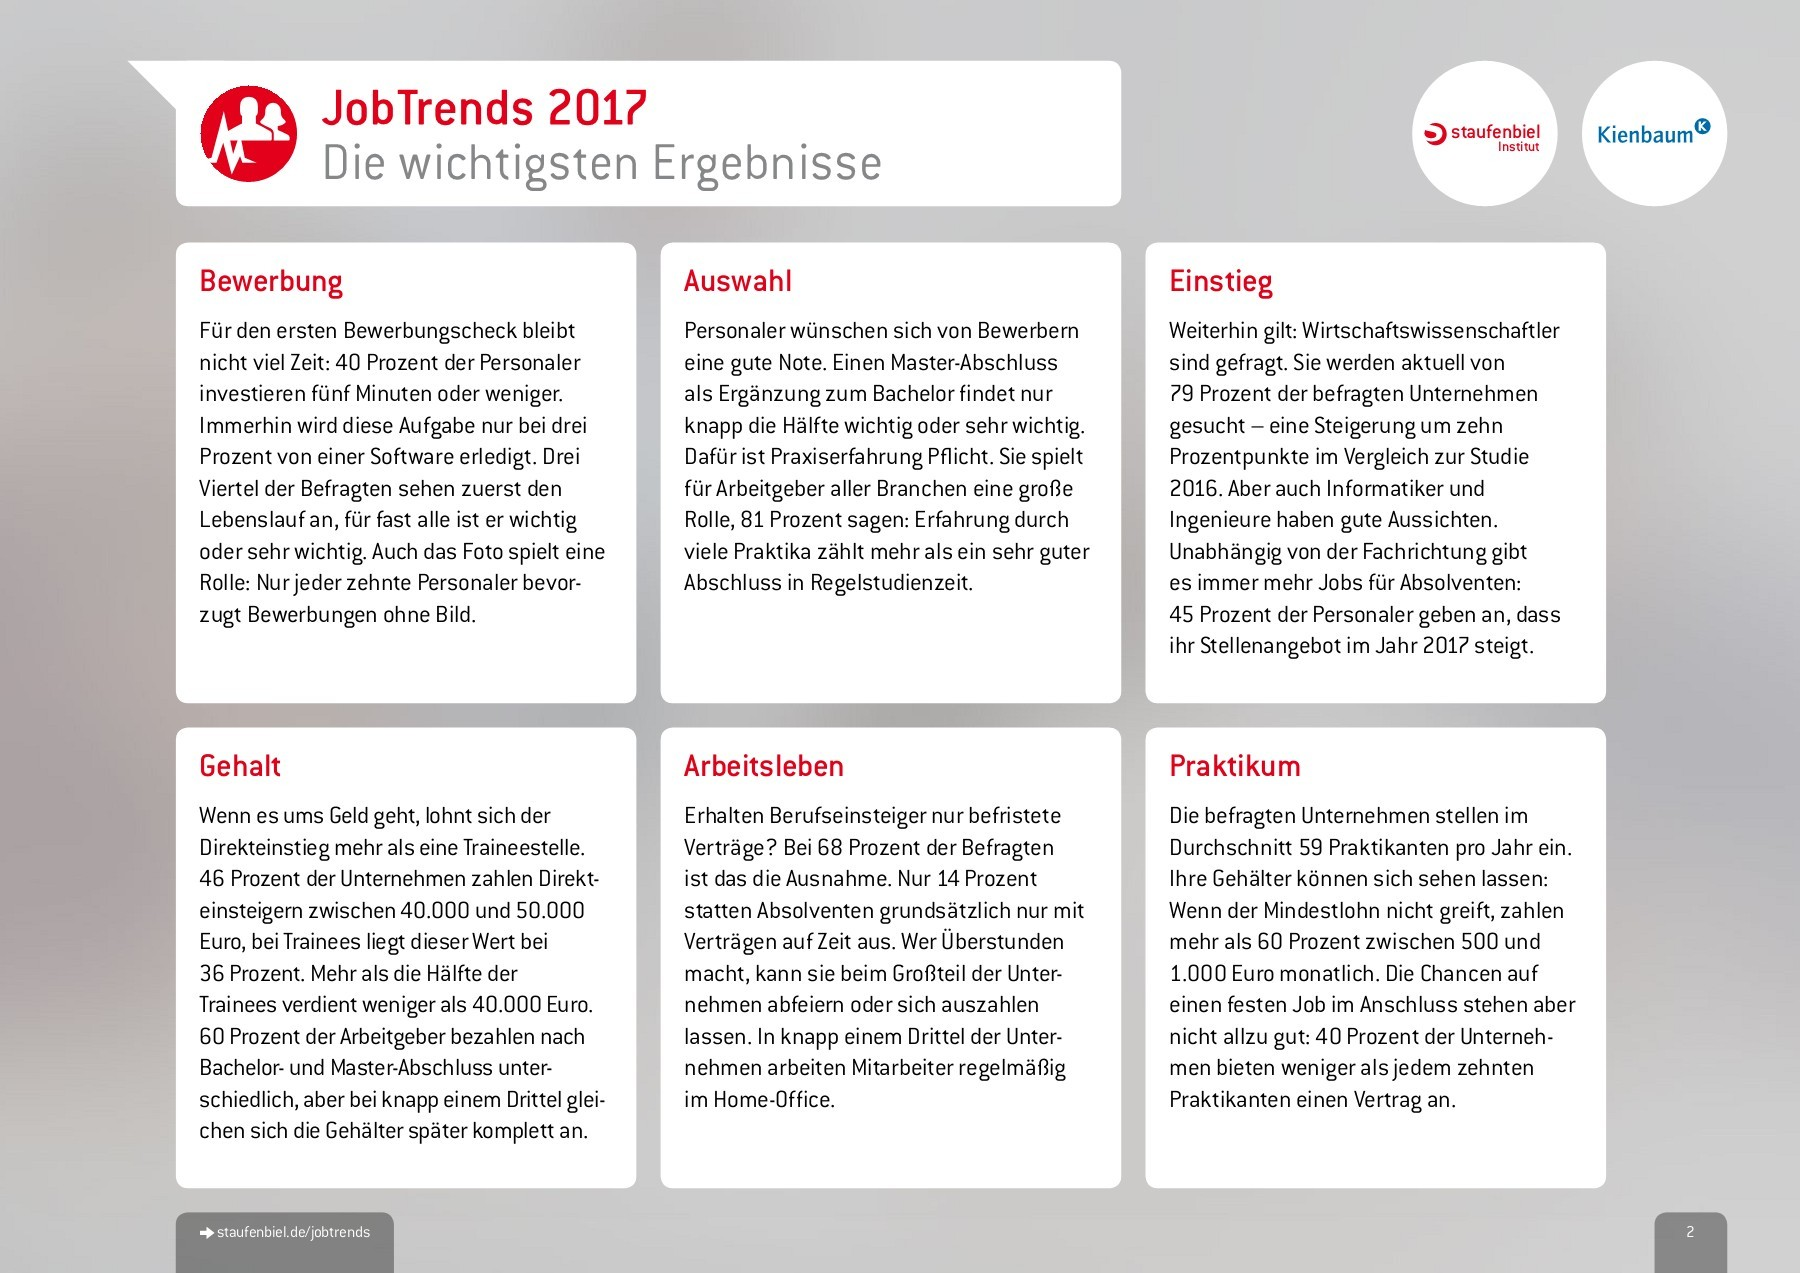 Home Office Pflicht Jobtrends 2017 Fliphtml5